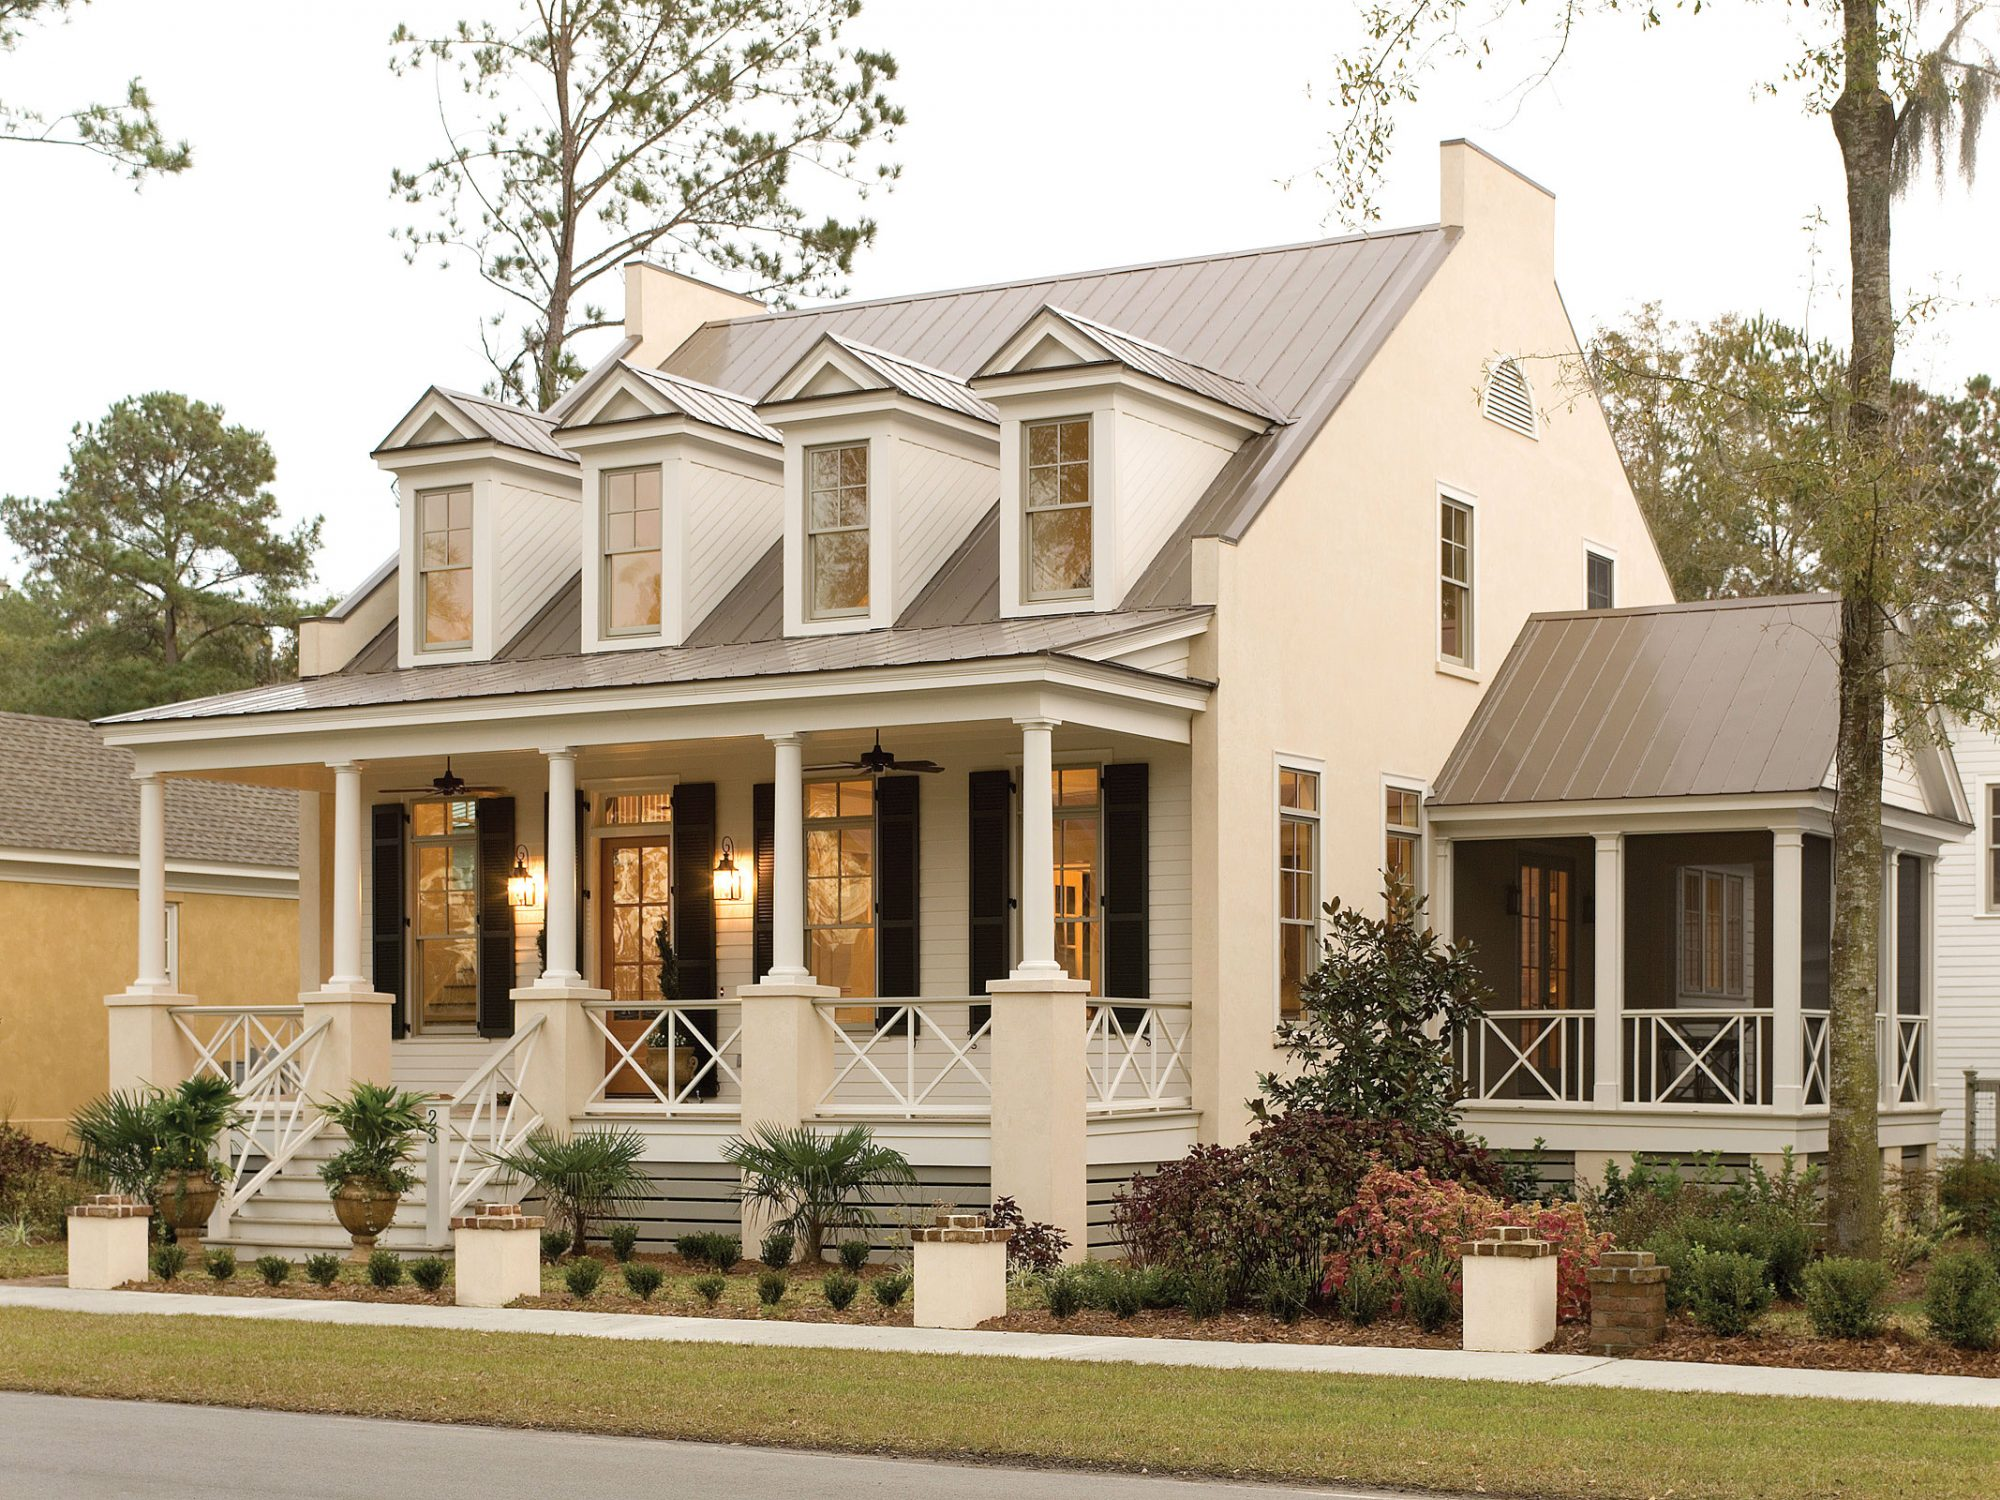 Top House Plans Southern Living   House Plans With Wrap Around Porches  Southern Living